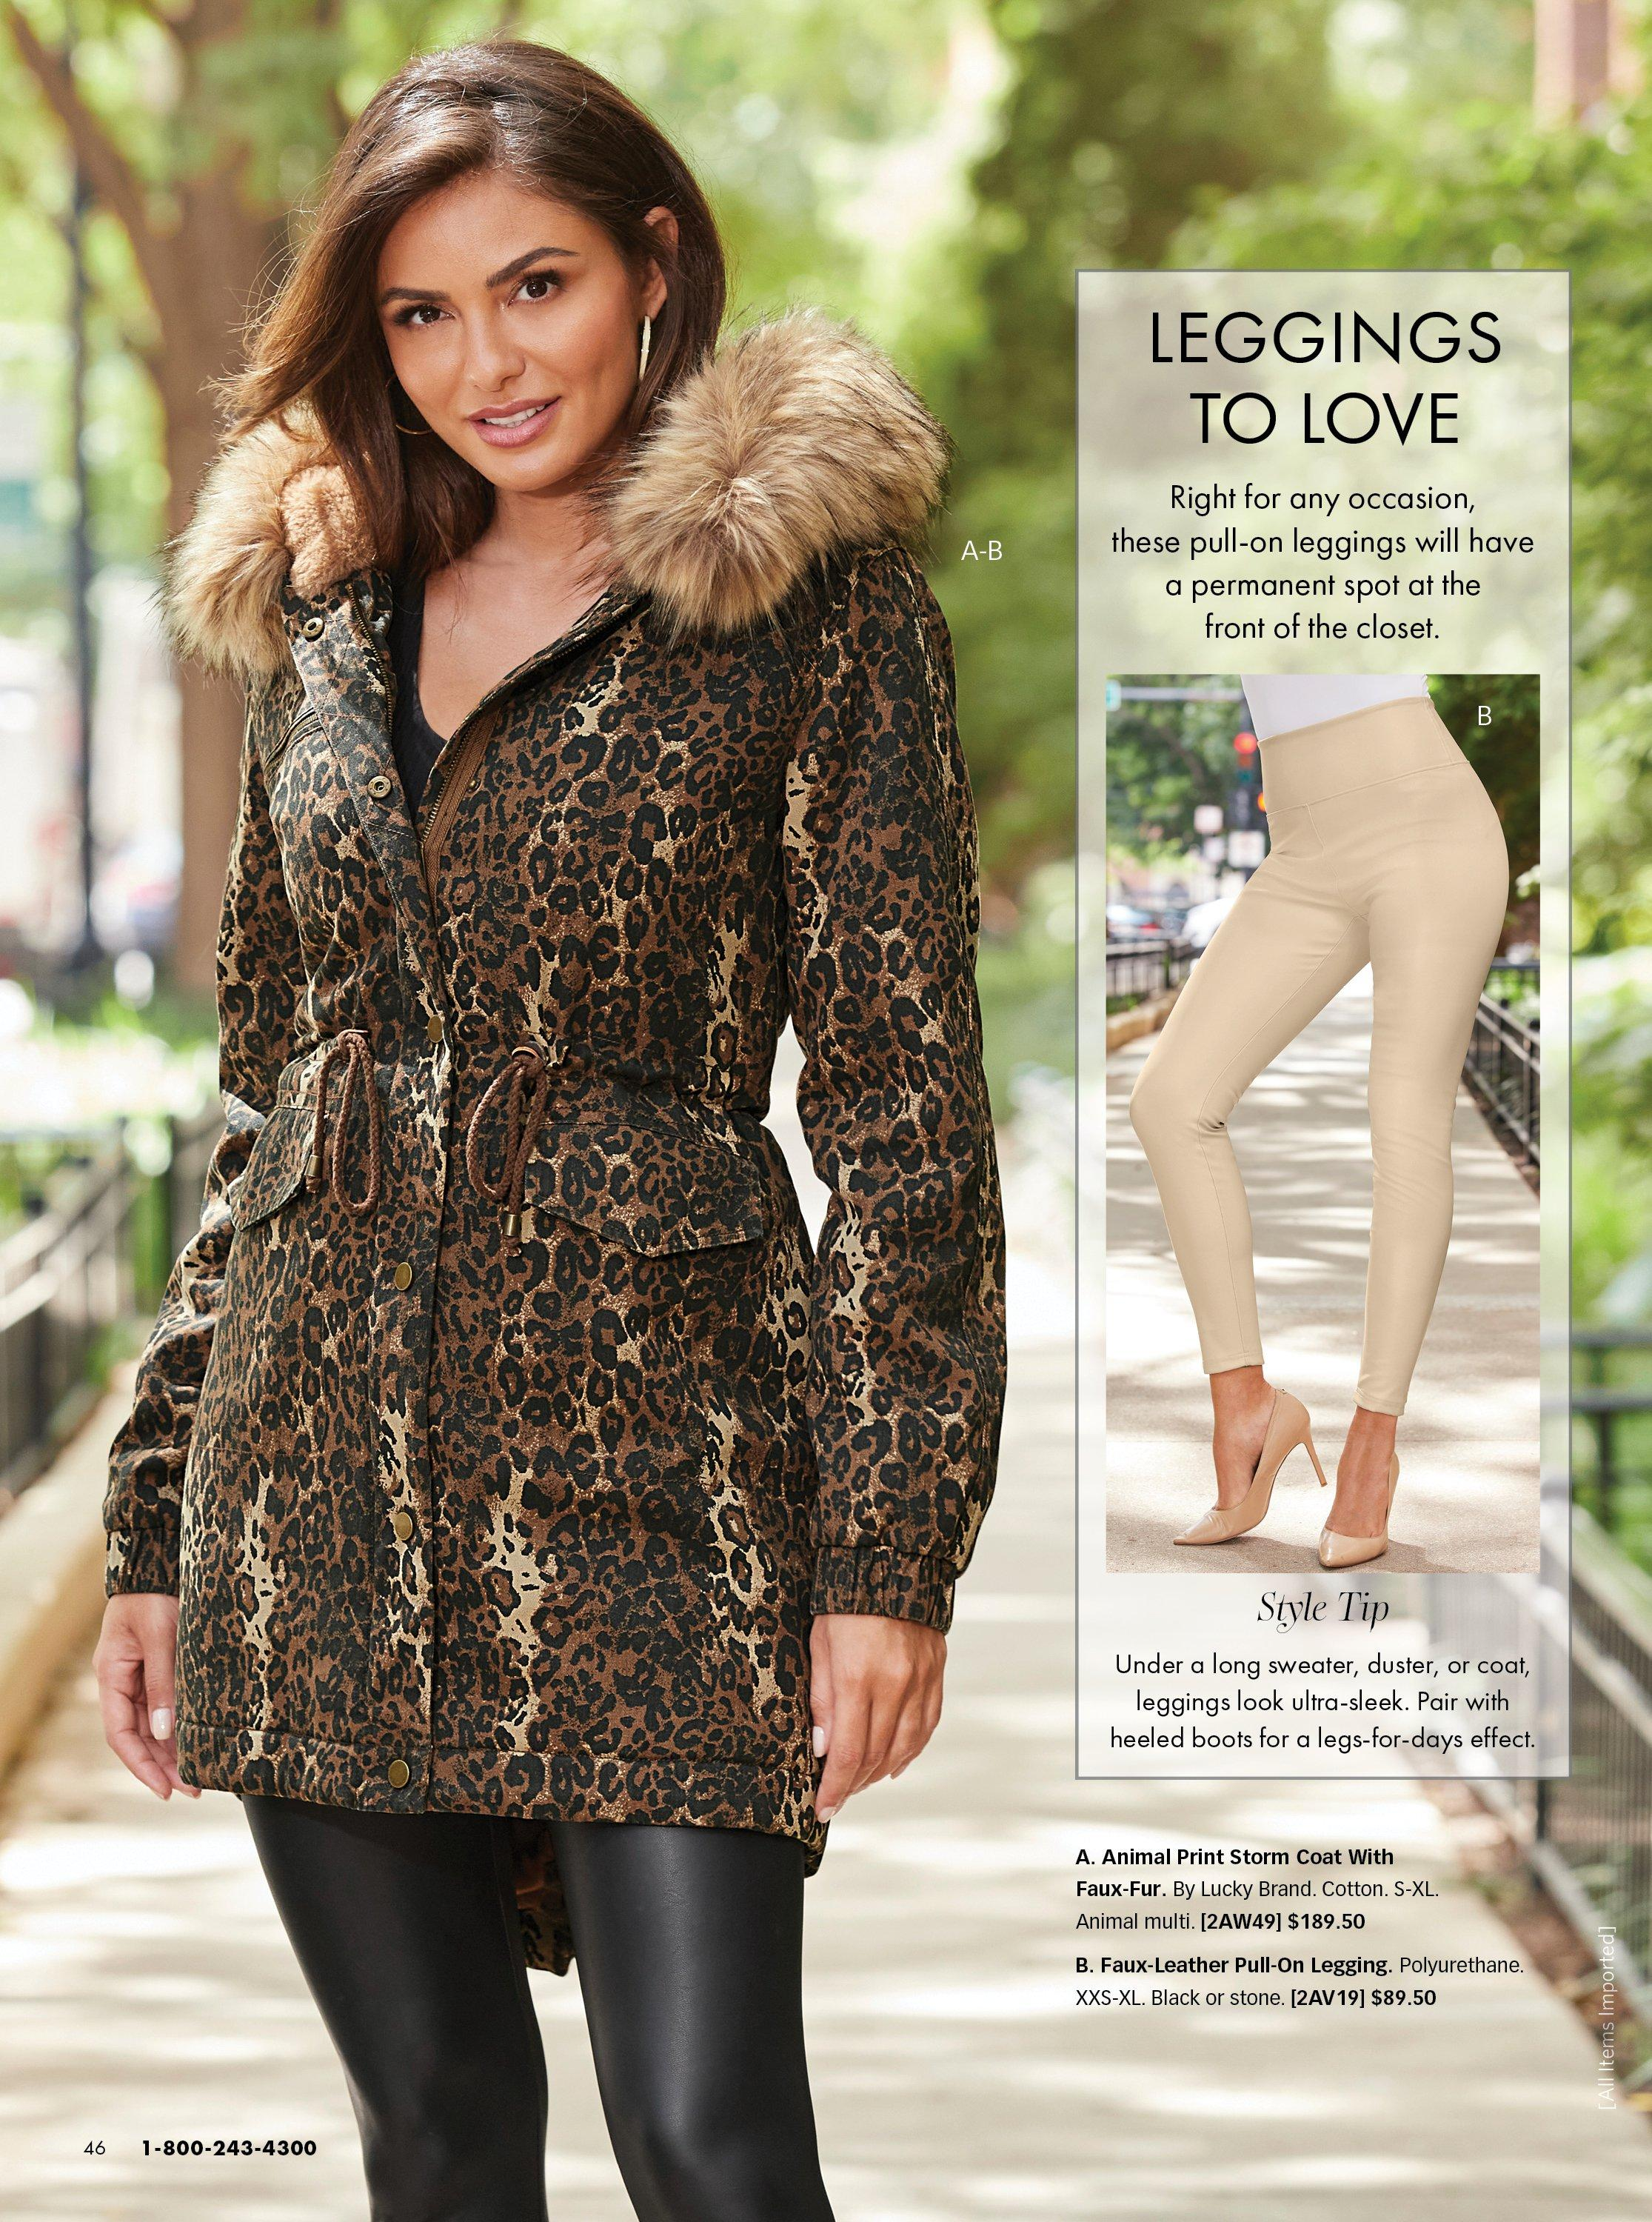 model wearing an animal print faux fur coat and faux-leather black leggings. right image shows leggings in beige.